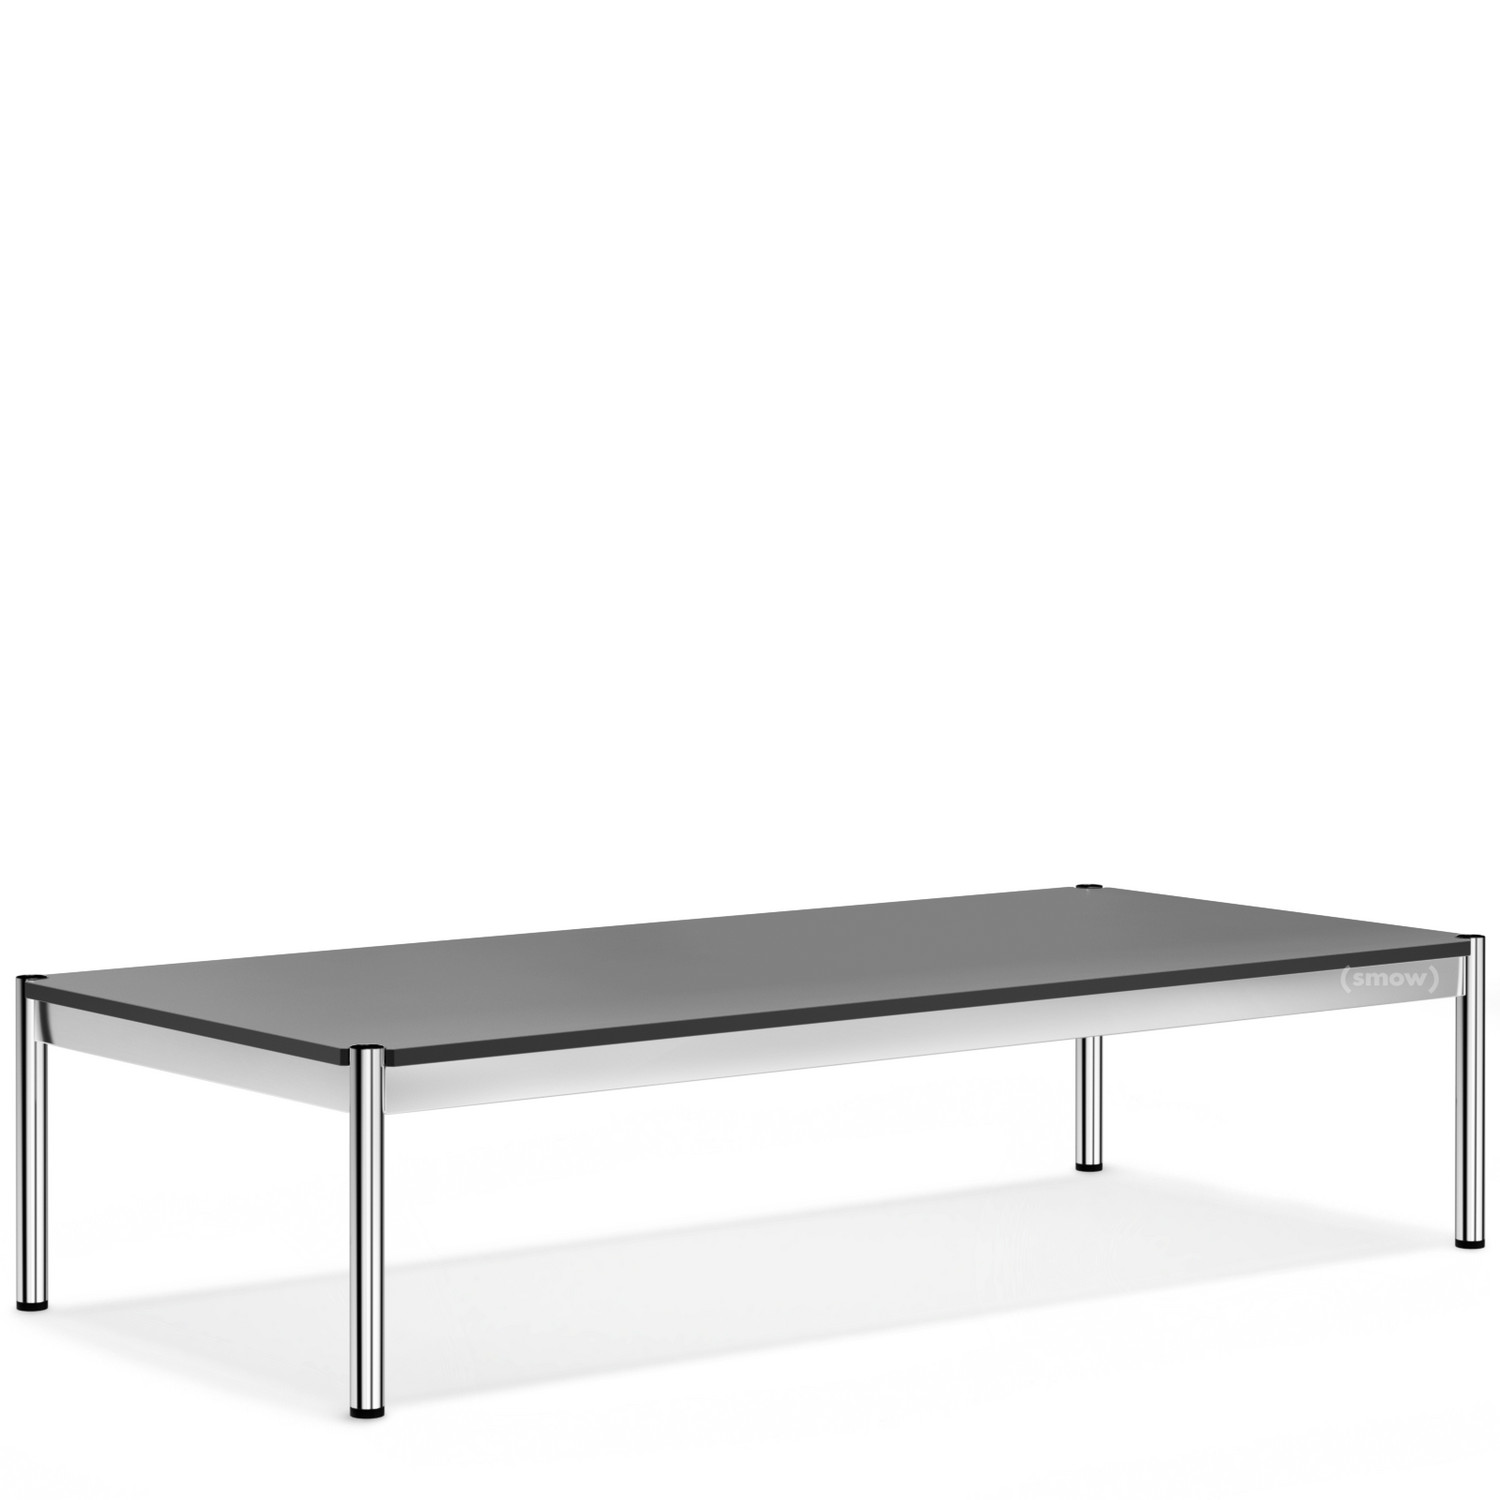 Usm Haller Couchtisch Usm Haller Coffee Table 75 X 150 Cm Laminate Light Mid Grey By